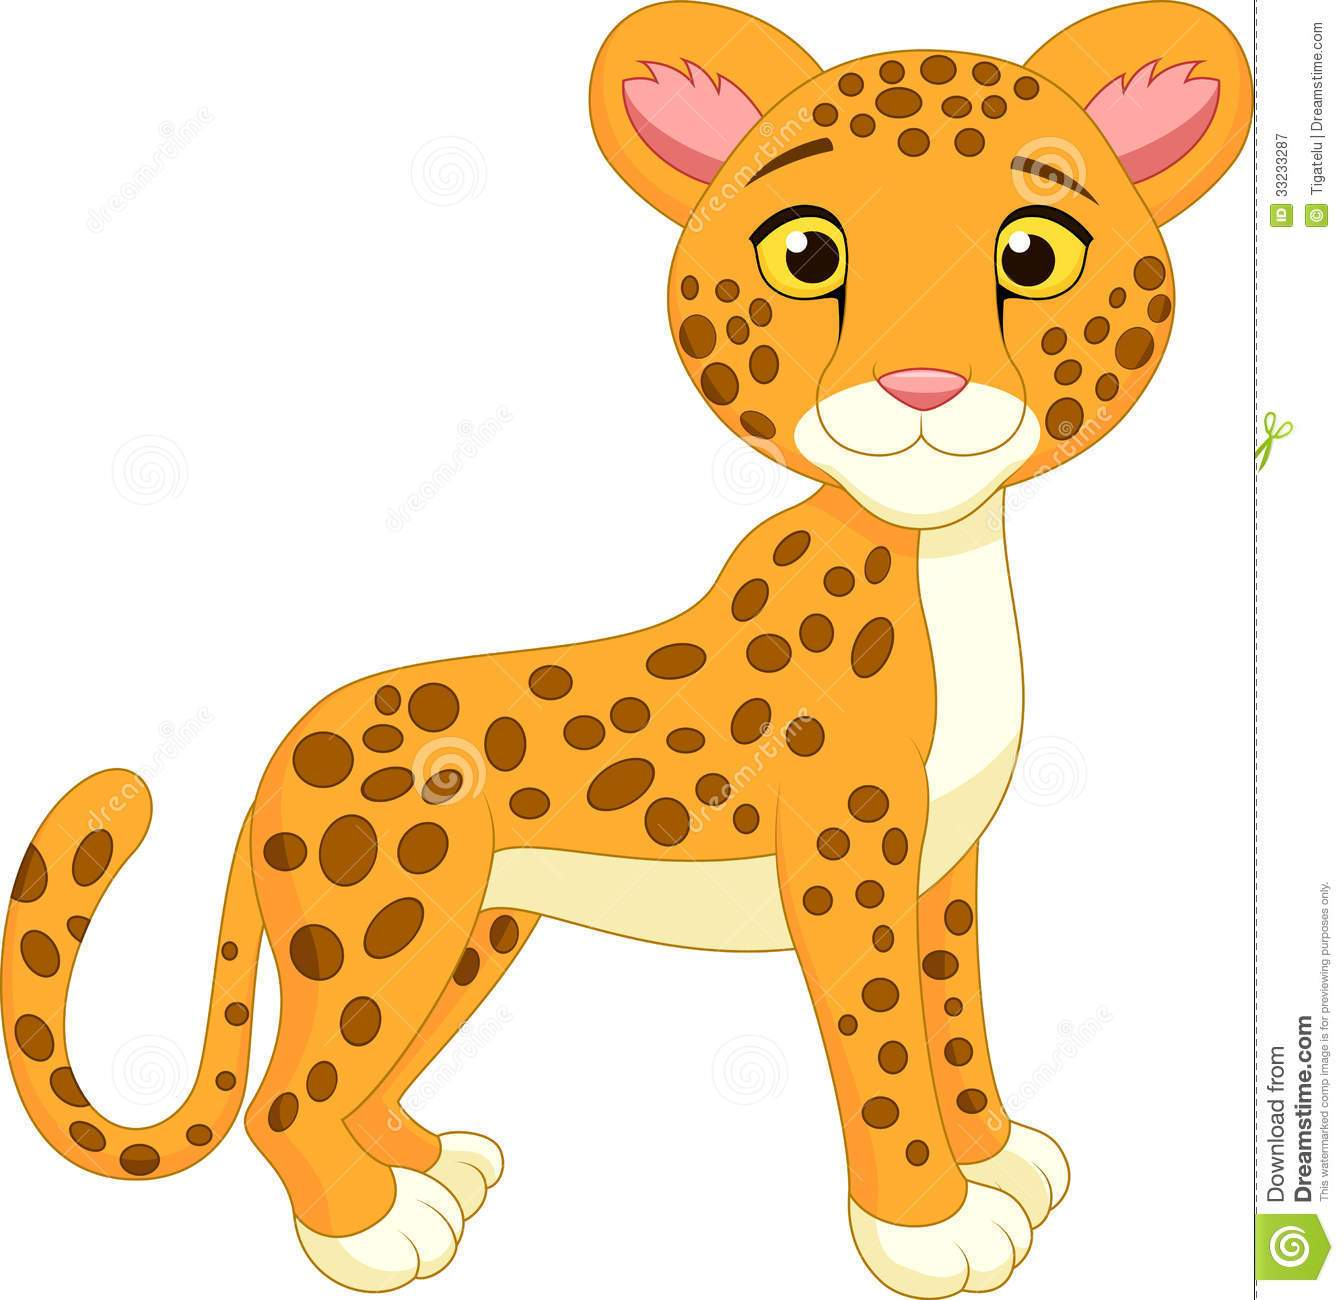 Cheetahs clipart banner royalty free download Cheetahs clipart 5 » Clipart Portal banner royalty free download